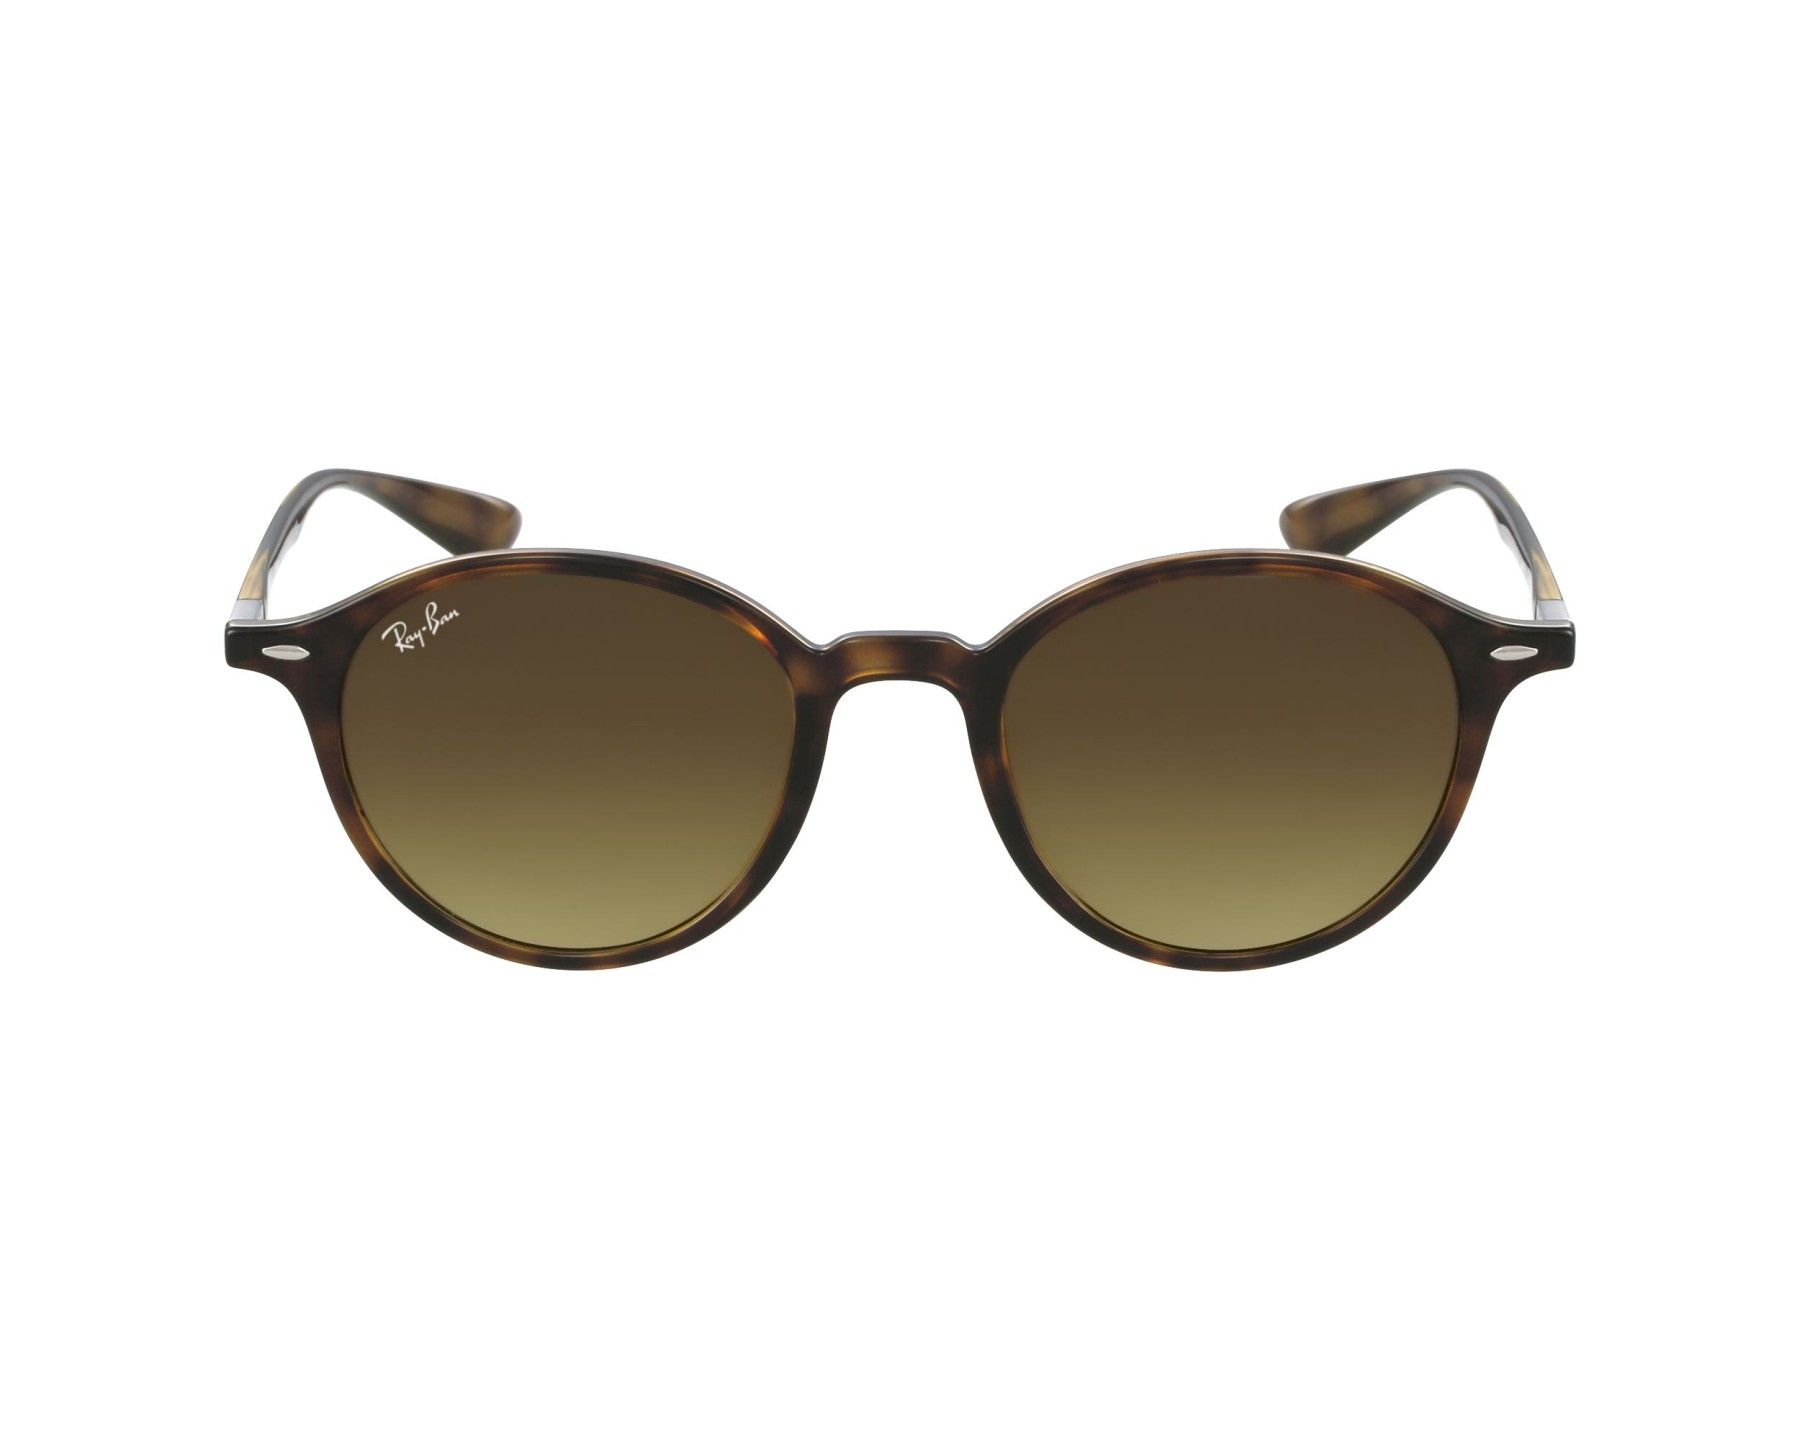 Ray-Ban RB4237 710/85 50 mm/21 mm MkzDr